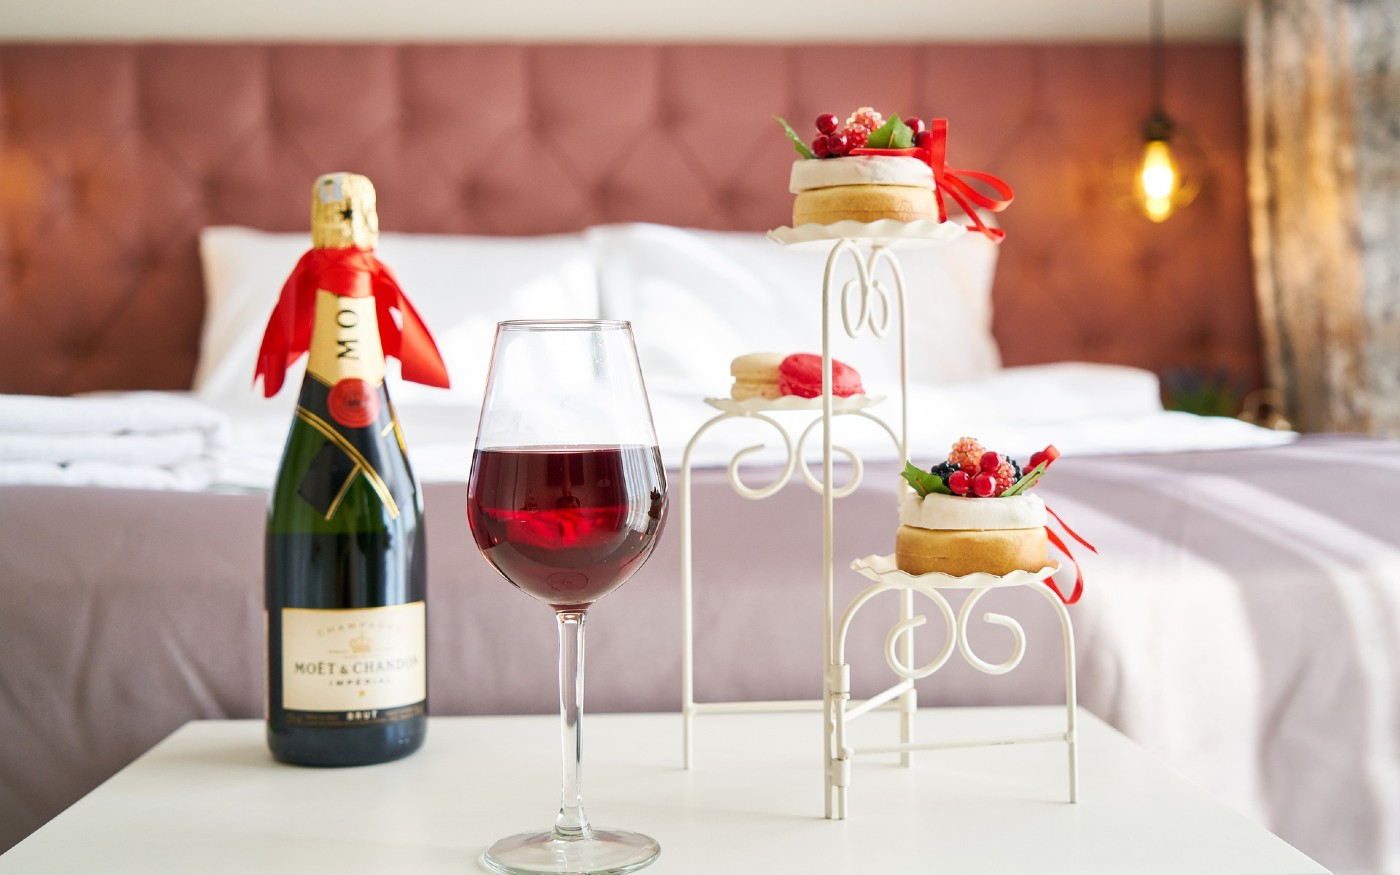 Bottle of champagne next to some cakes in a hotel room